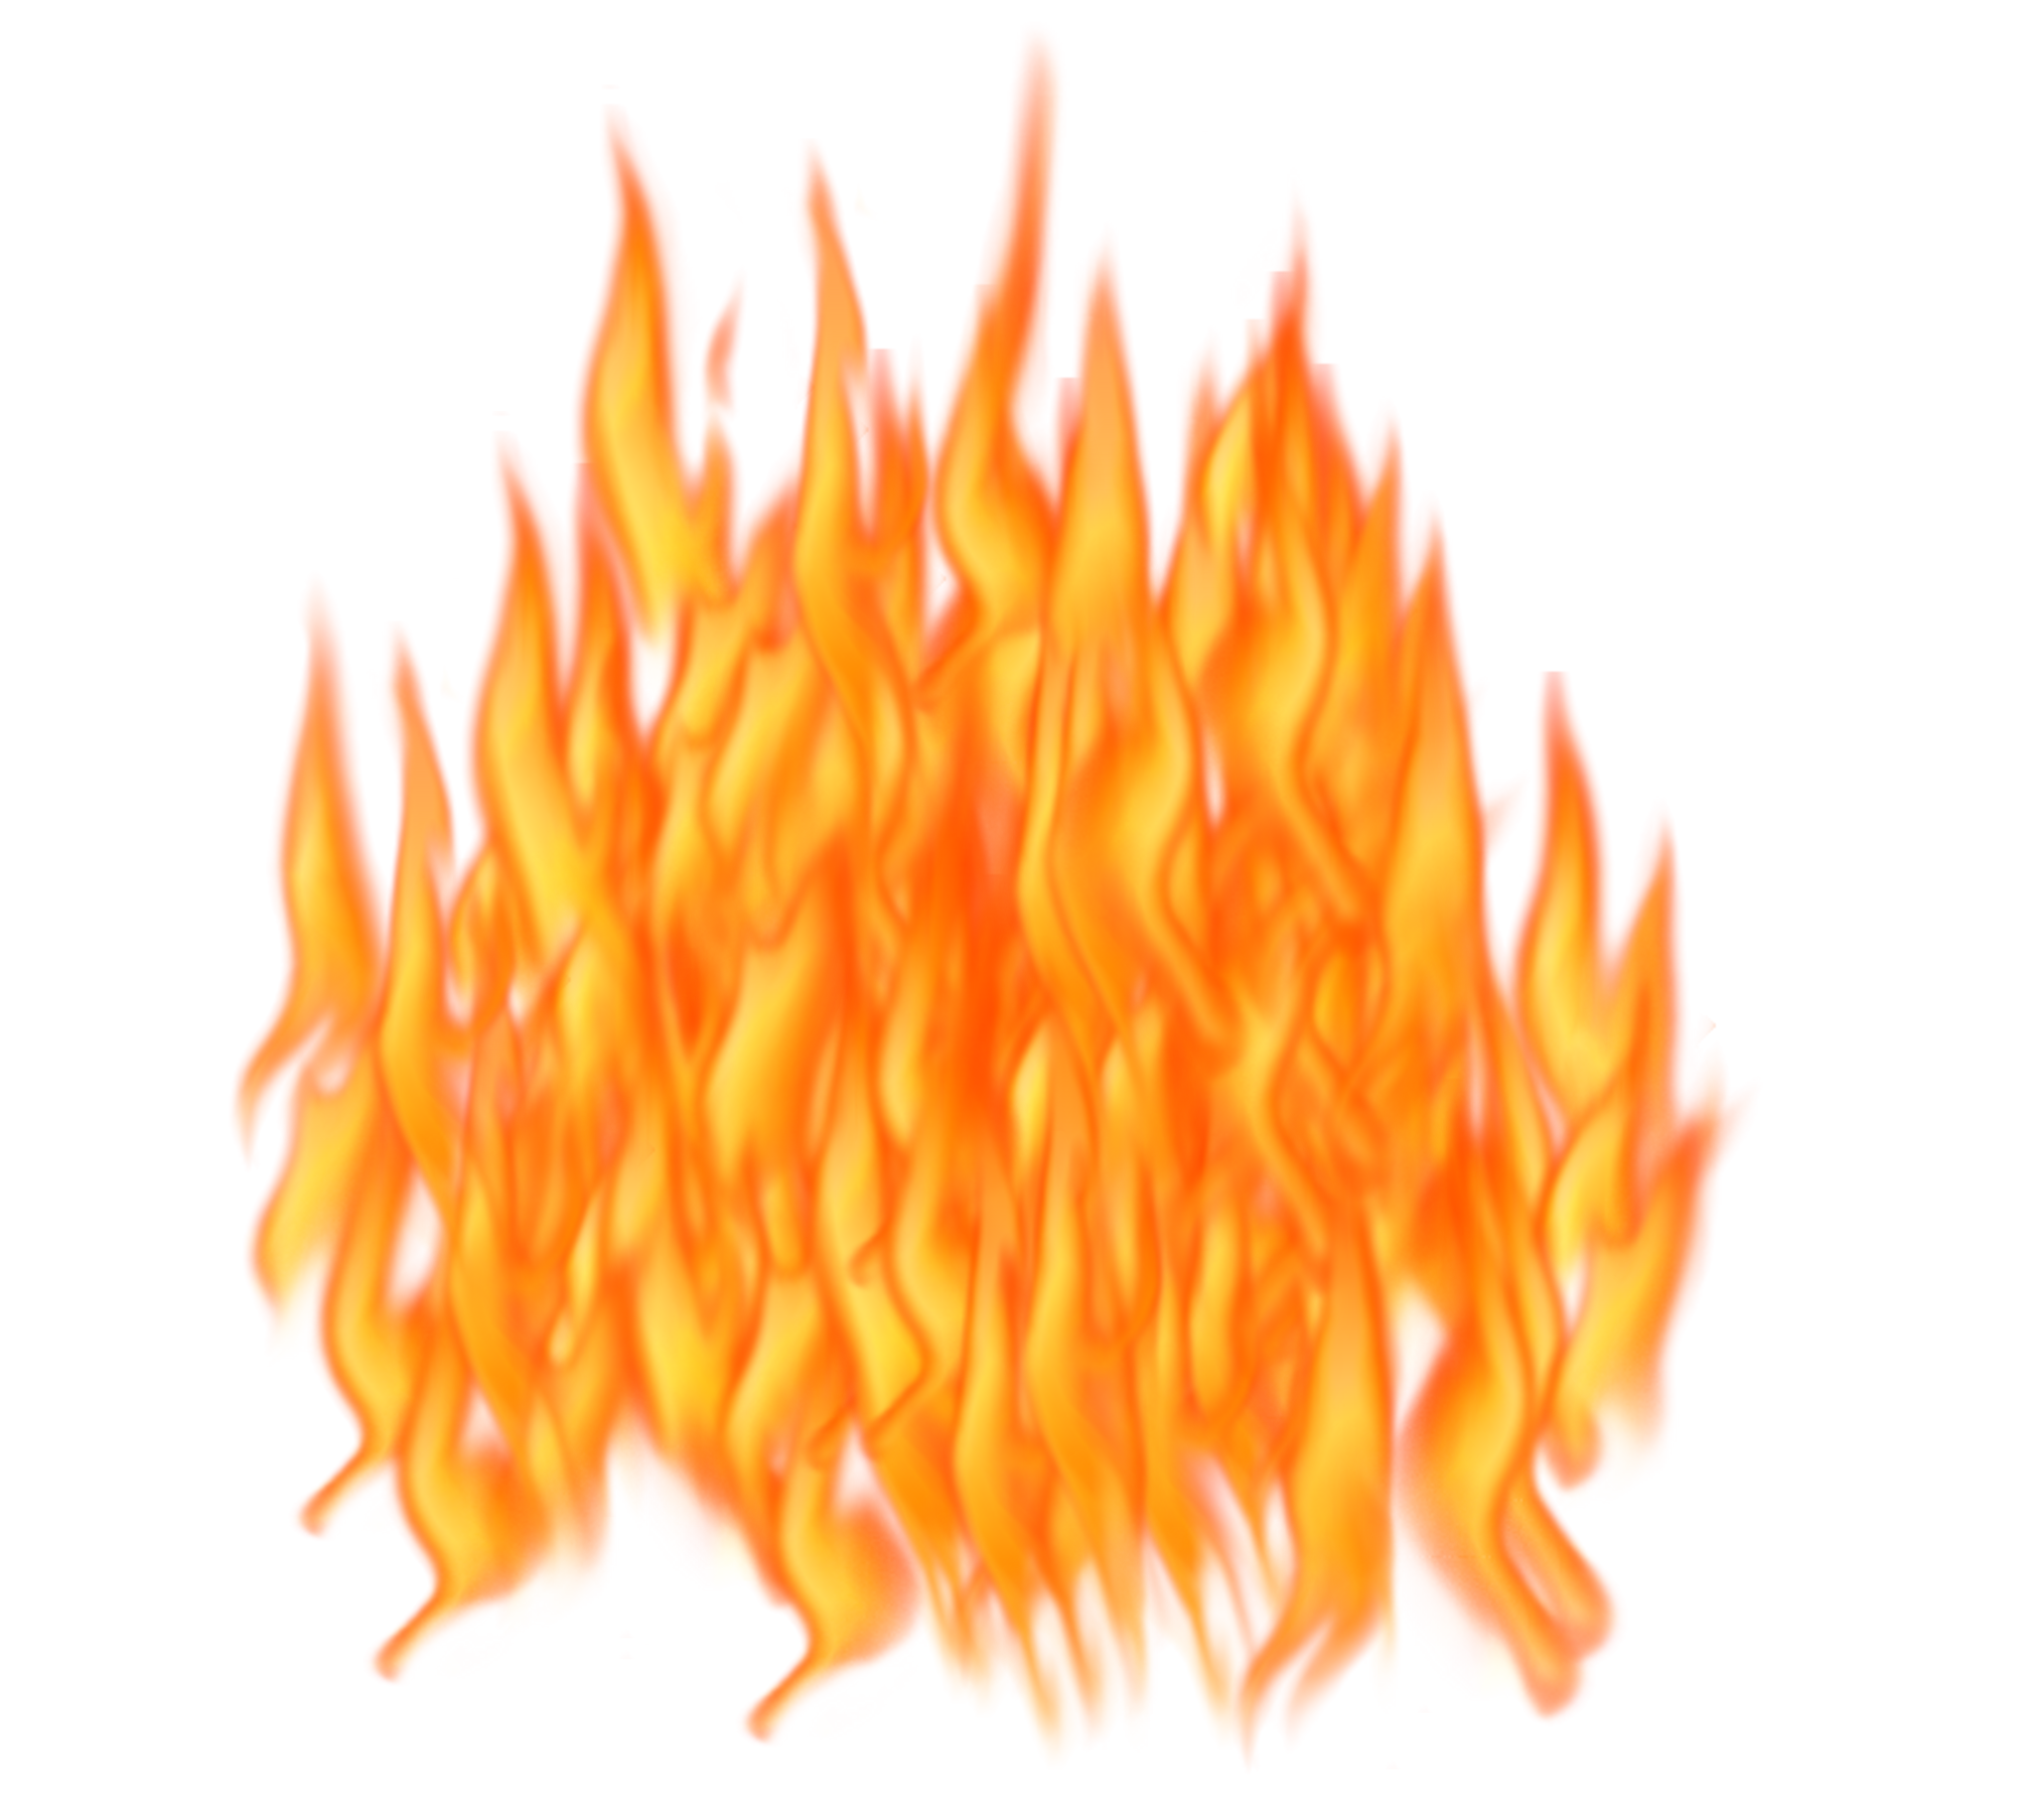 Flames Png - ClipArt Best